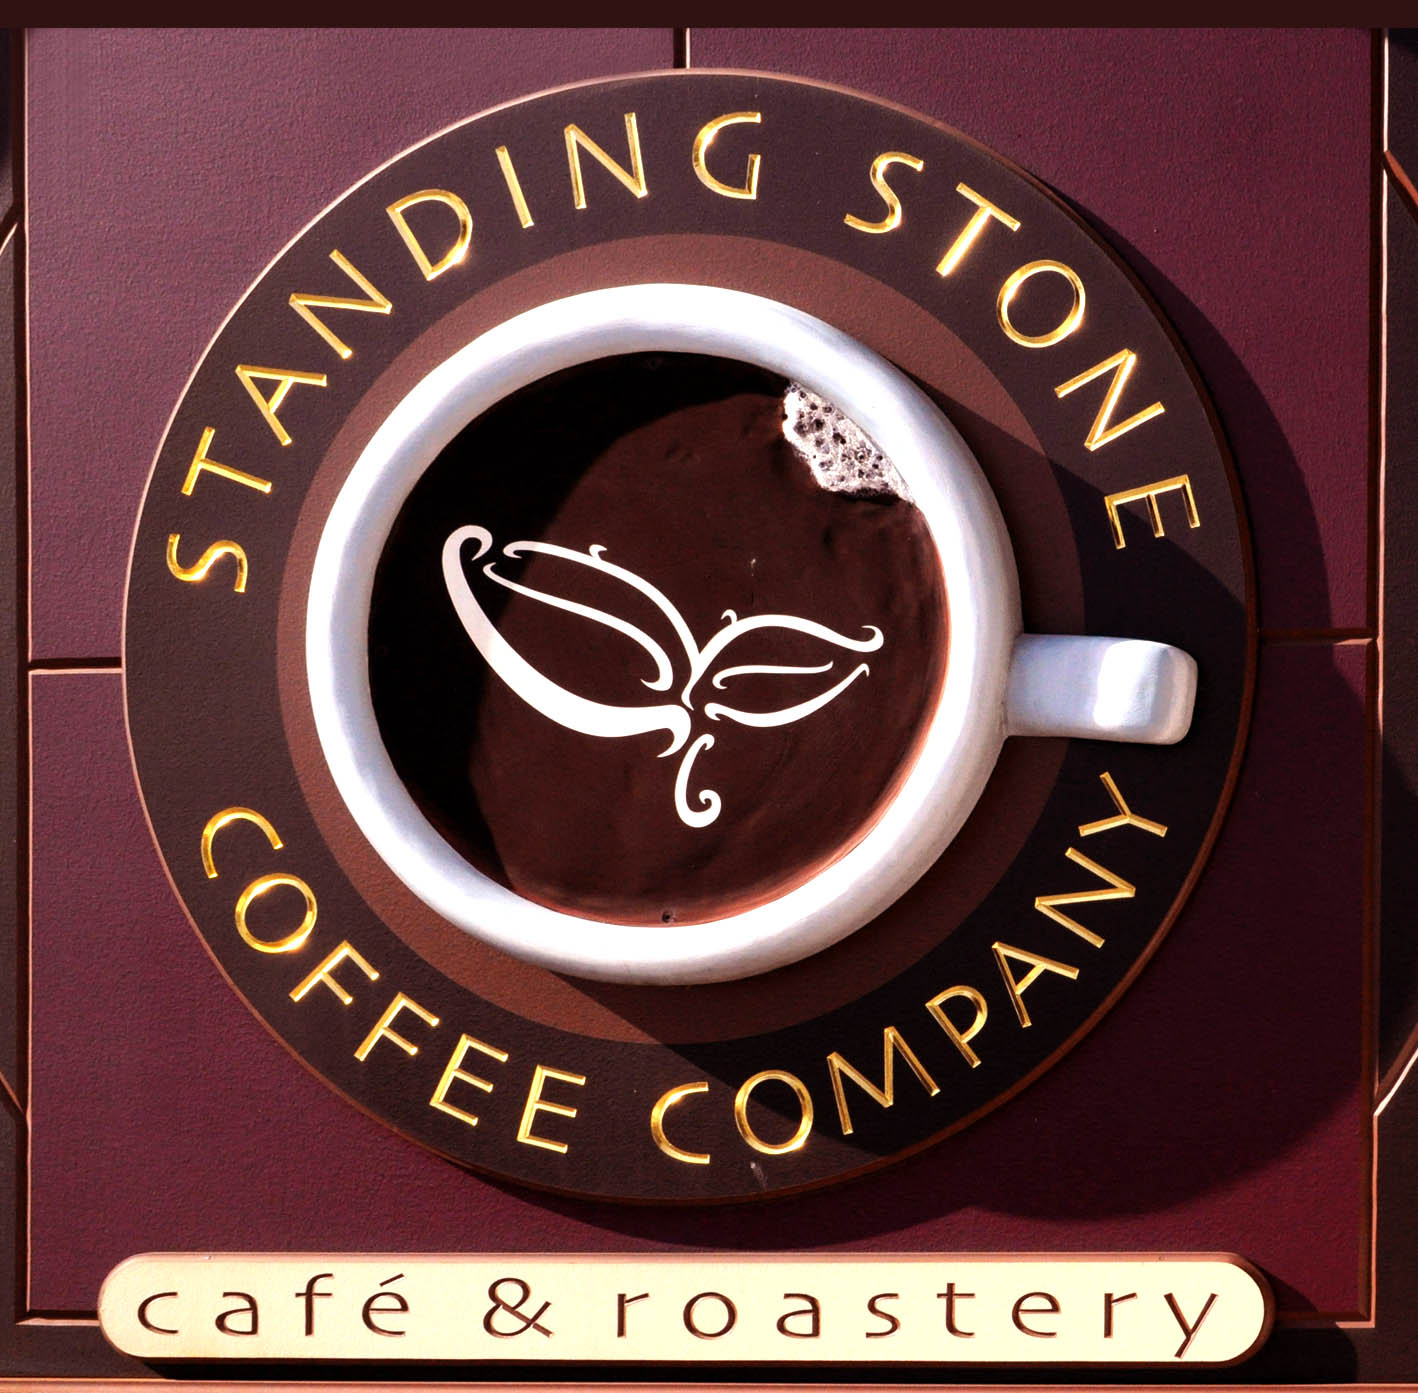 Outdoor sign of Standing Stone Coffee Company